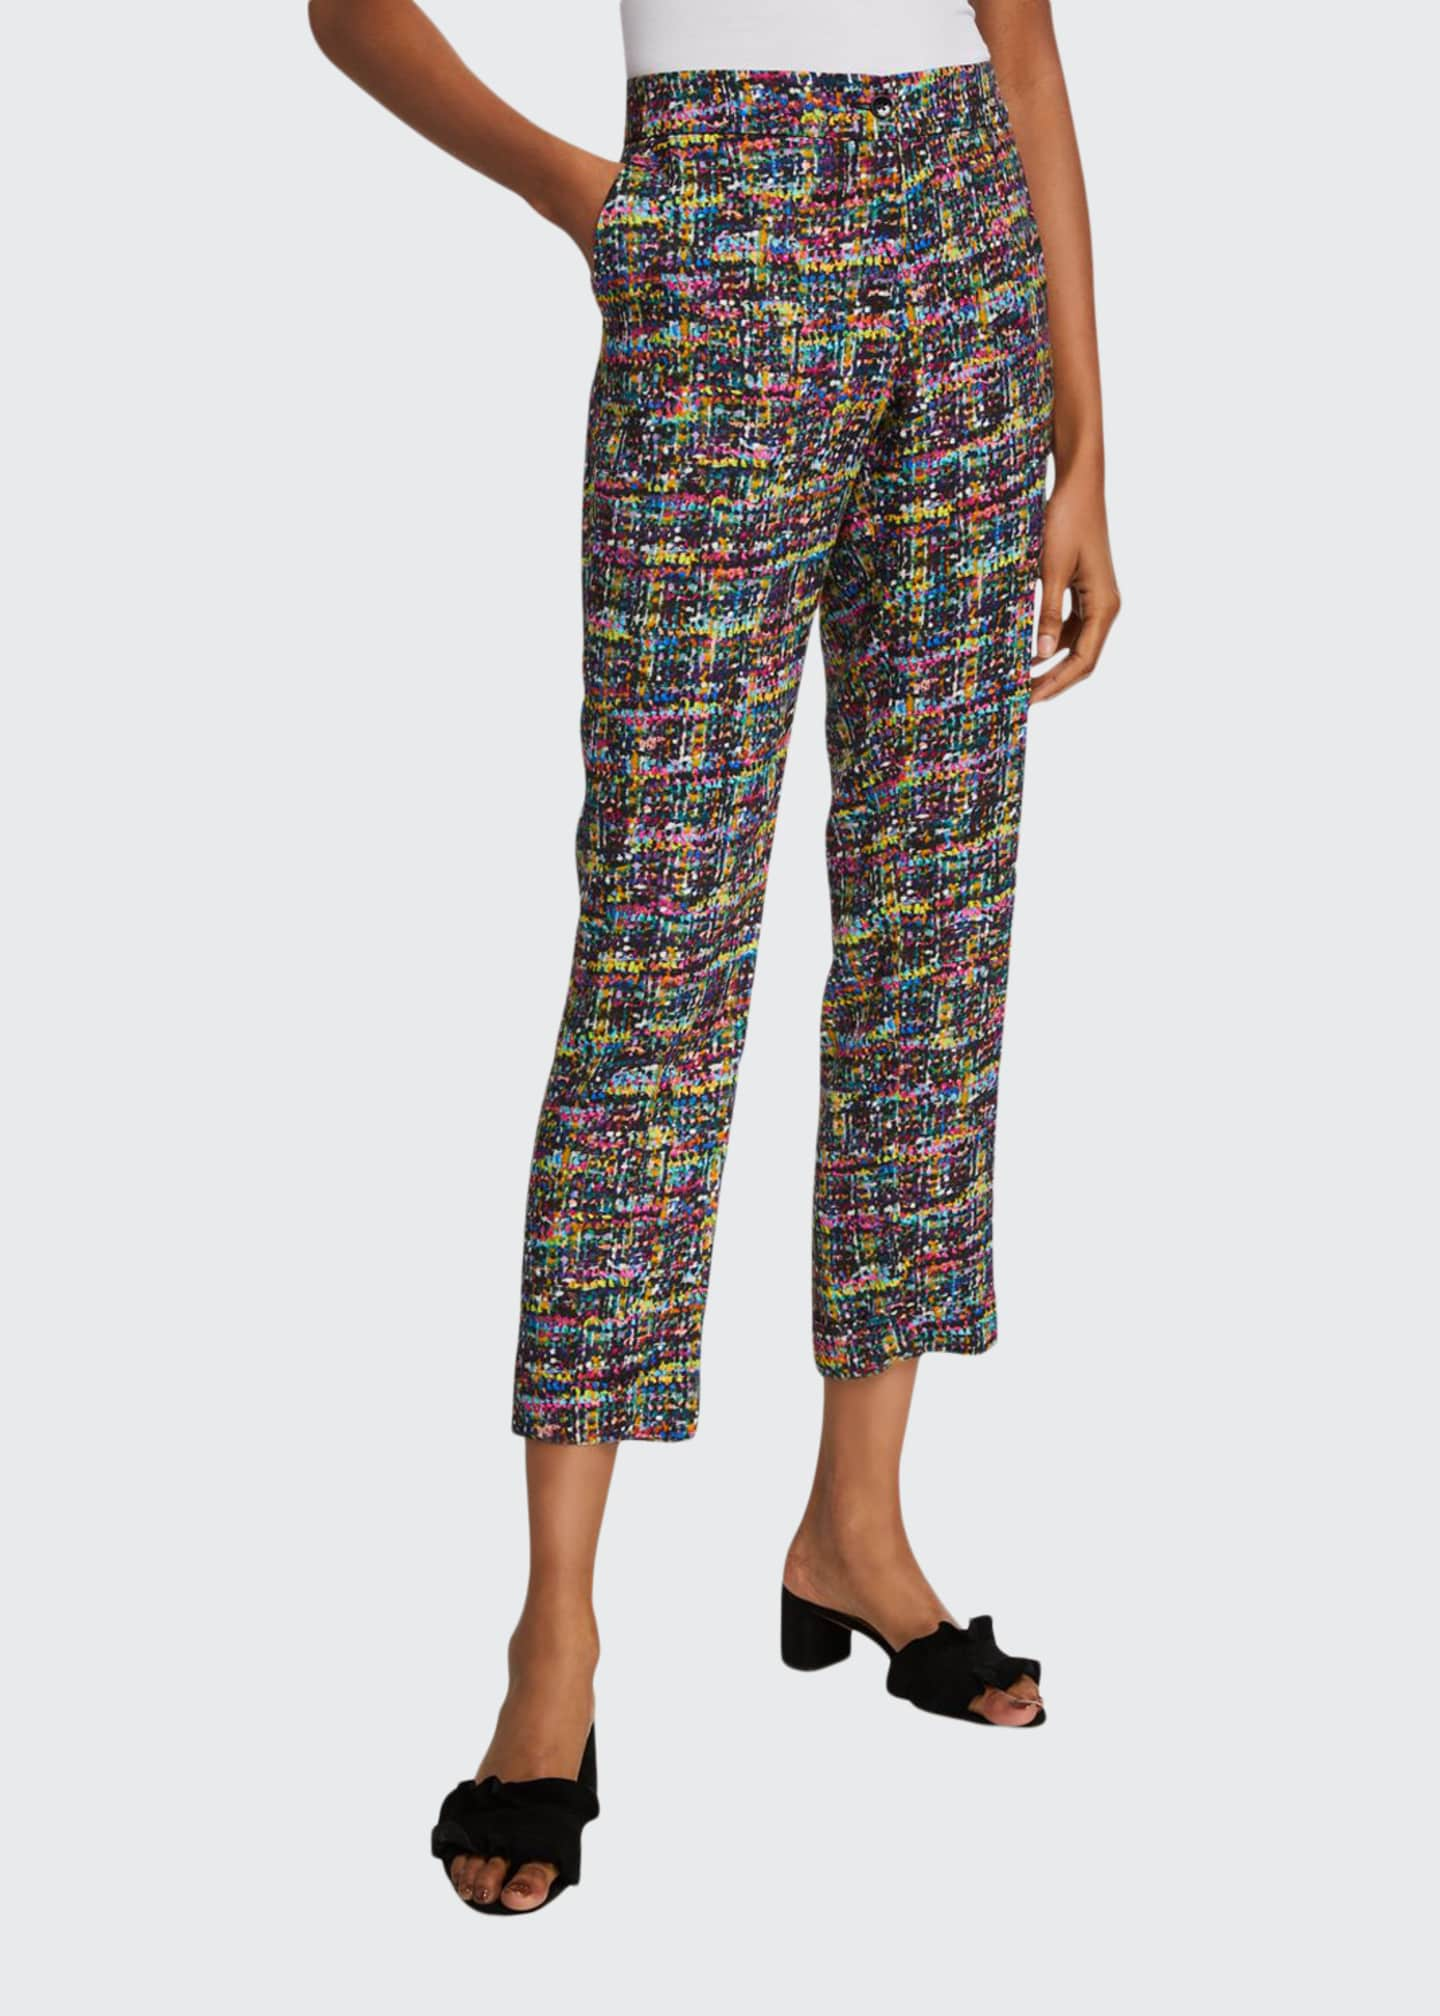 Etro Tweed Print Cuffed Pants